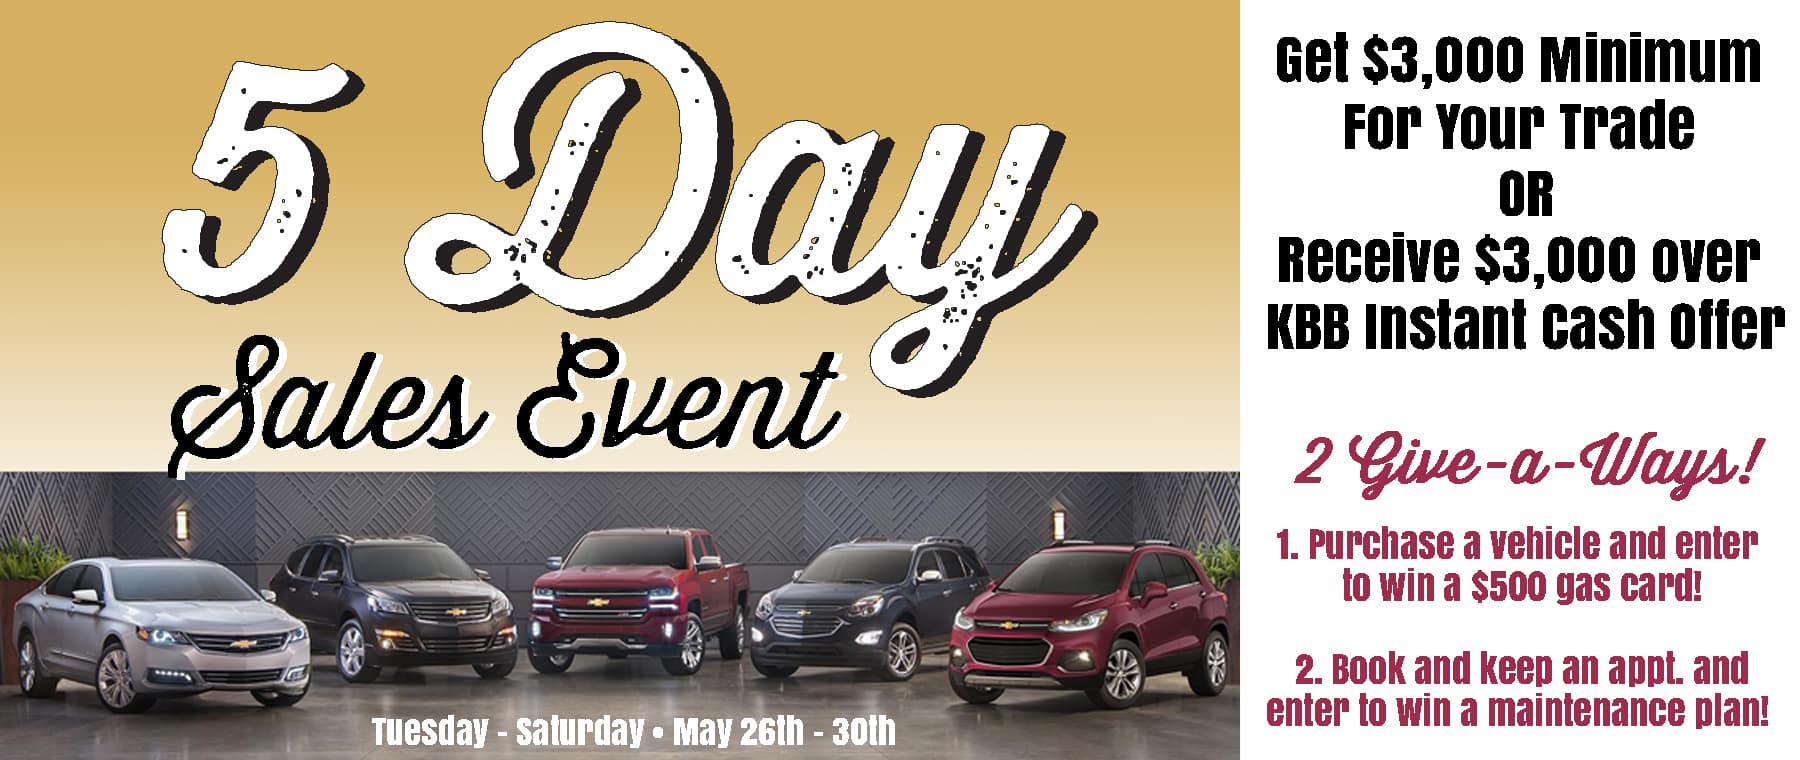 5 Day Sales Event, $3000 Minimum Trade or $3000 over Kelly Blue Book